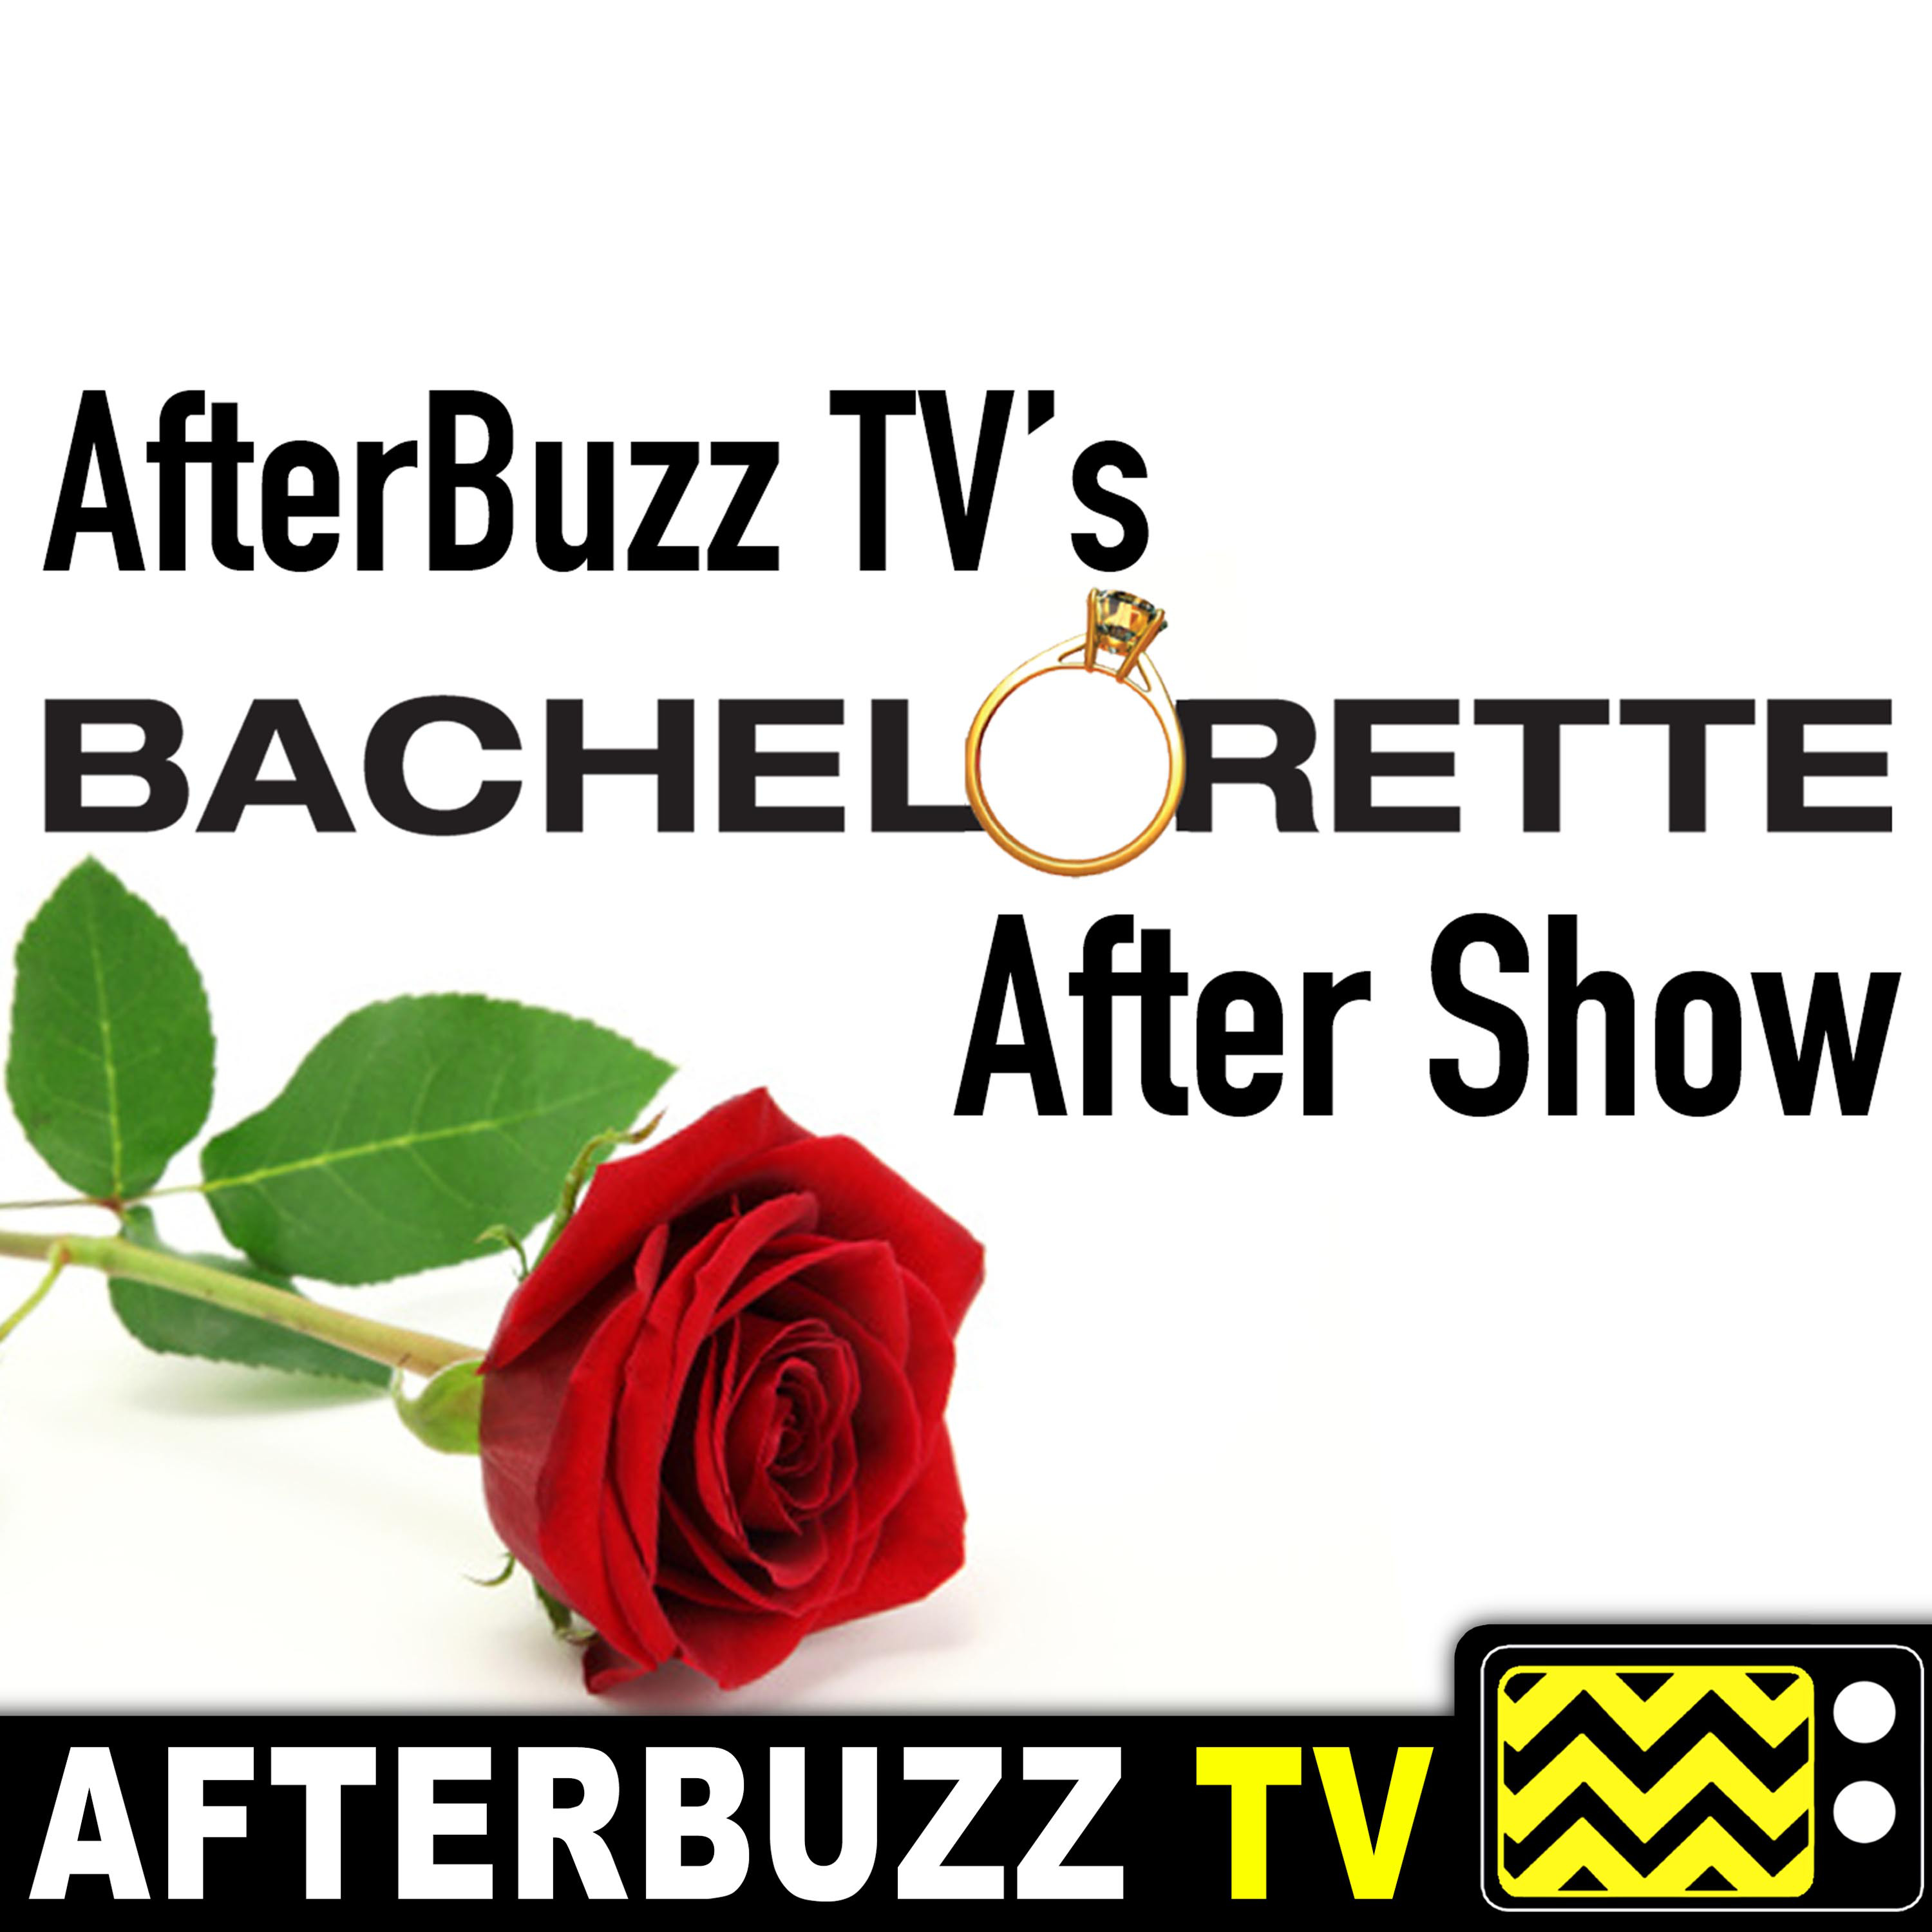 Season 15 Episode 3 'The Bachelorette' Review from The